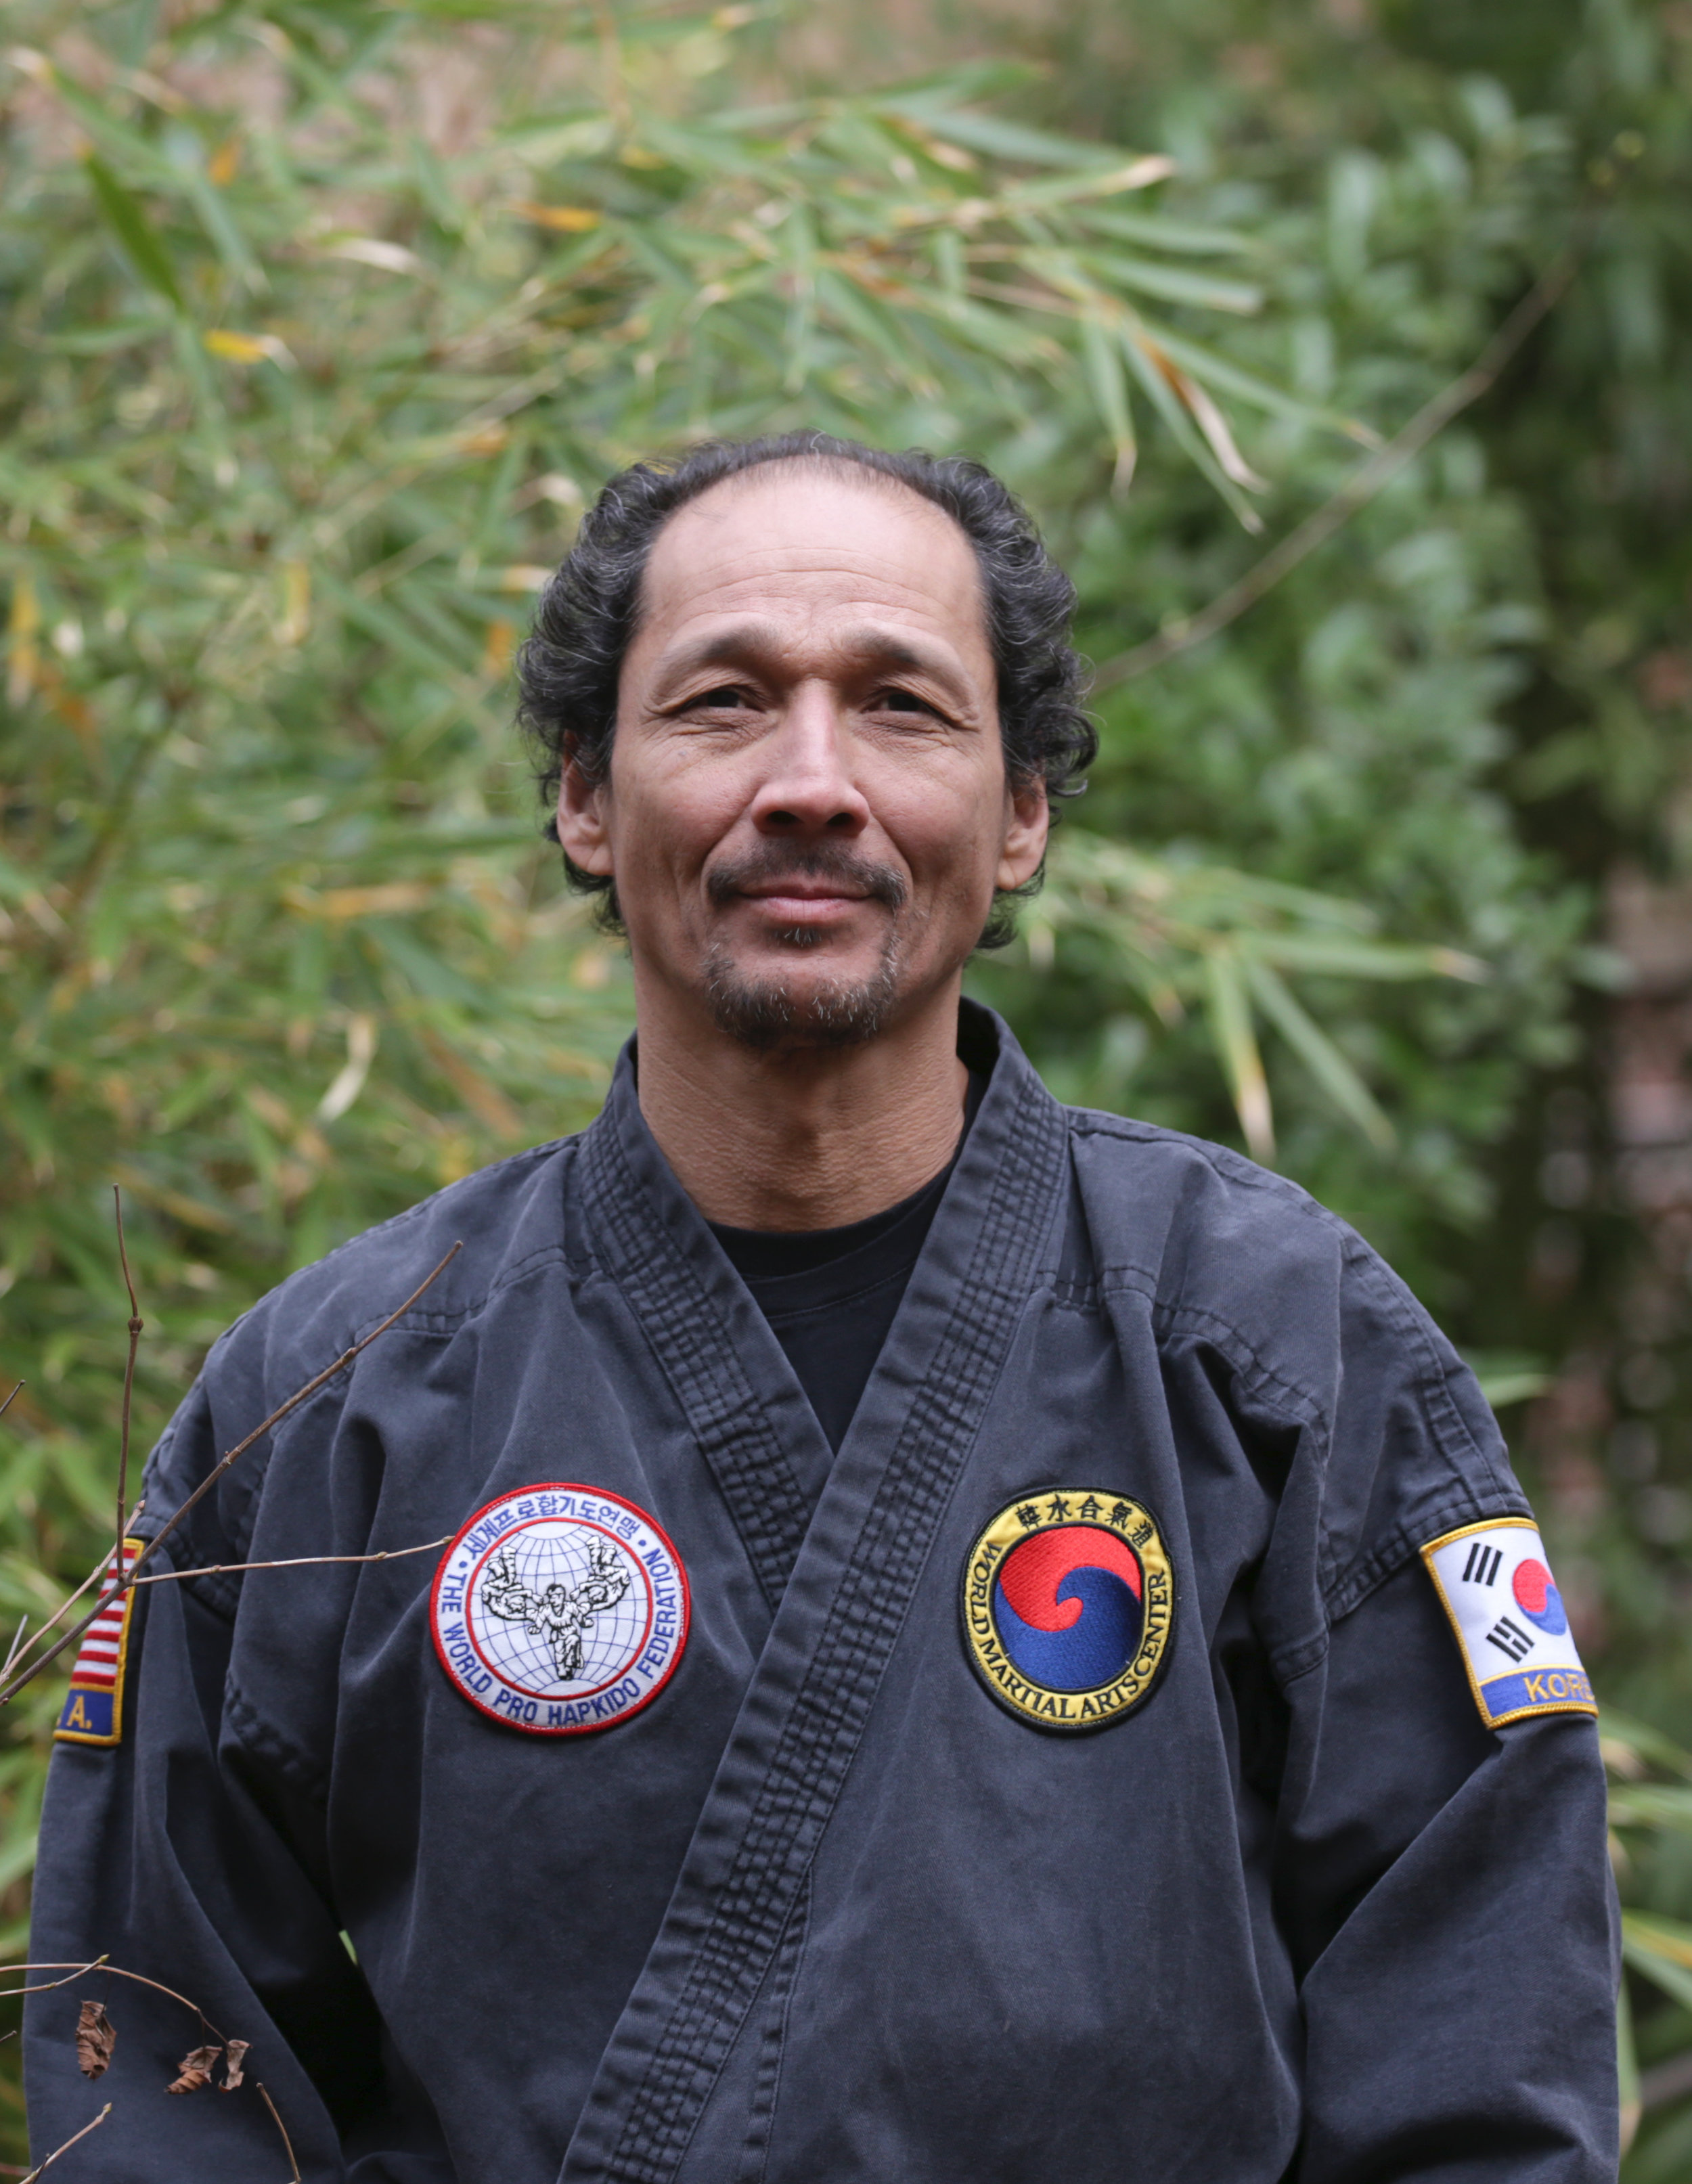 Certified Instructor  Marc Hungerbuhler has studied Martial Arts since early childhood. Born and raised in Switzerland to a Korean mother and Swiss father, his early practice was contextual. Max Hungerbuhler his father was the president of the Swiss Budo federation in 1955, and a 5th dan in Judo, the position was handed over from his grandmaster Hanho Rhi who founded the Swiss Jiu-Jitsu and Judo federation in 1937.  Growing up, Marc was trained in Judo by his father and his students who continued the dojang as principle instructors until the late 80s. Twenty-five years later,  enrolling his own children in the Hapkido School of Sabumnim Master Herbert, Marc reentered Martial Arts training in New York and has studied at WMAC since 2005.